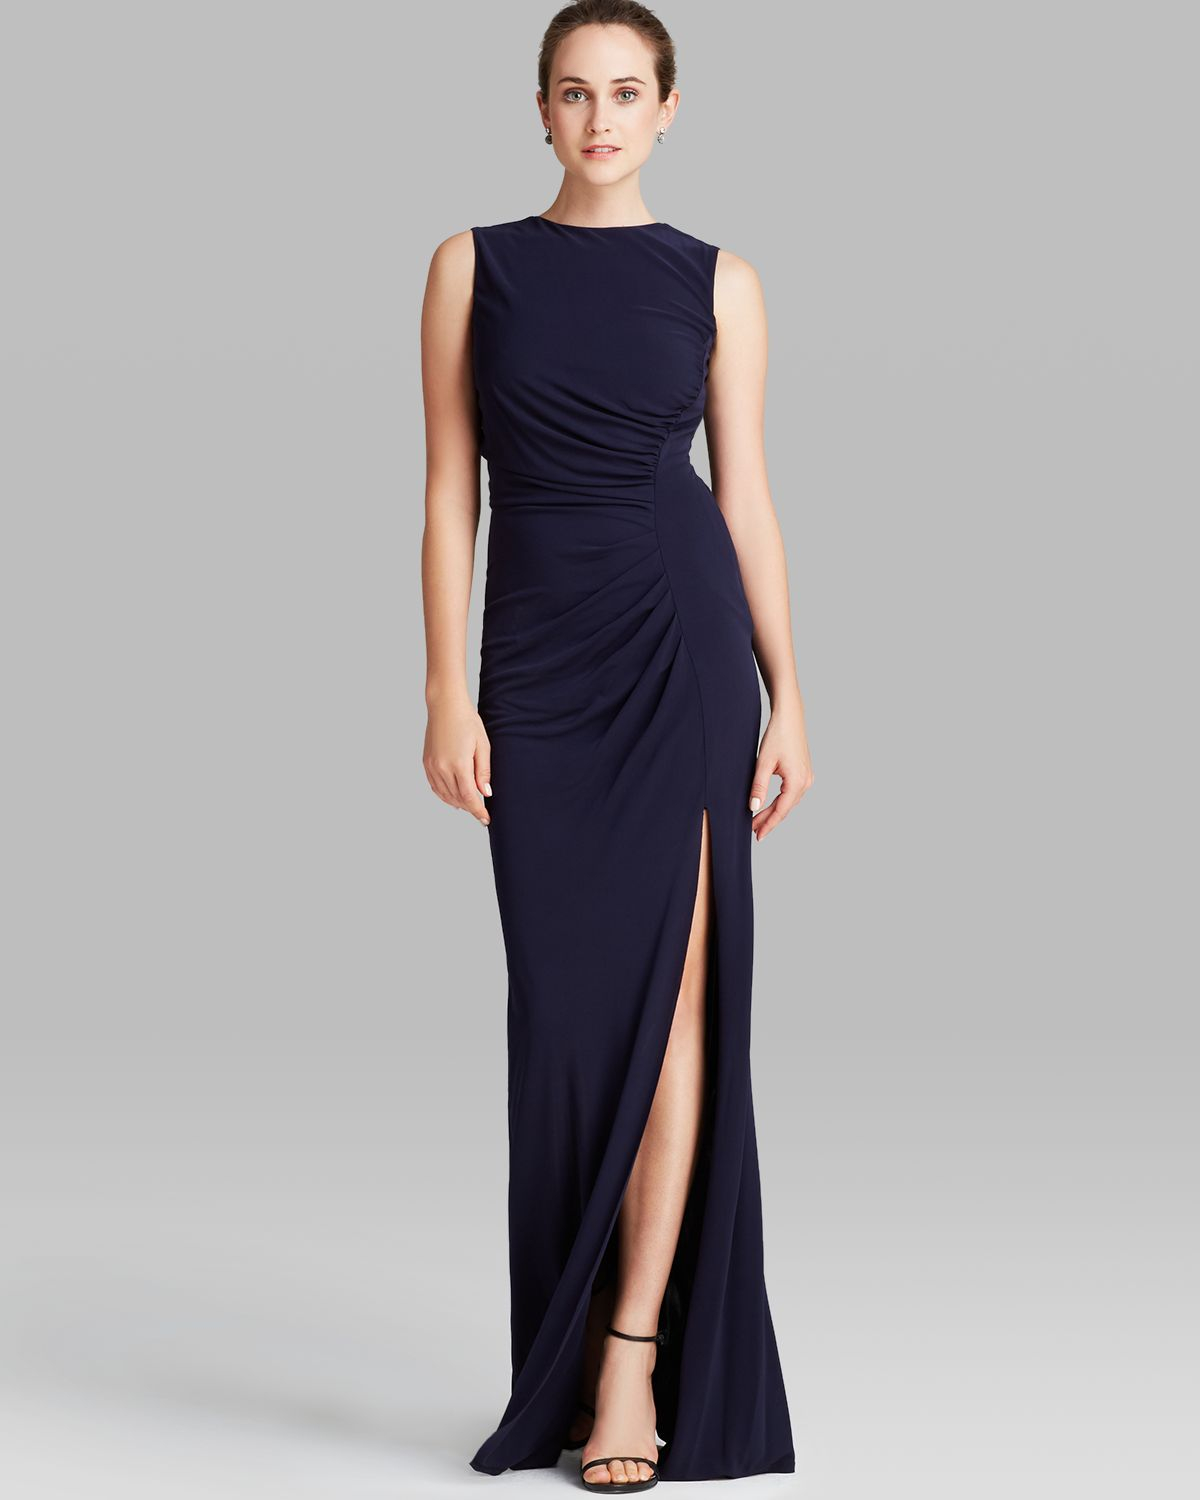 Lyst - Abs By Allen Schwartz Gown - Sleeveless Slit in Blue